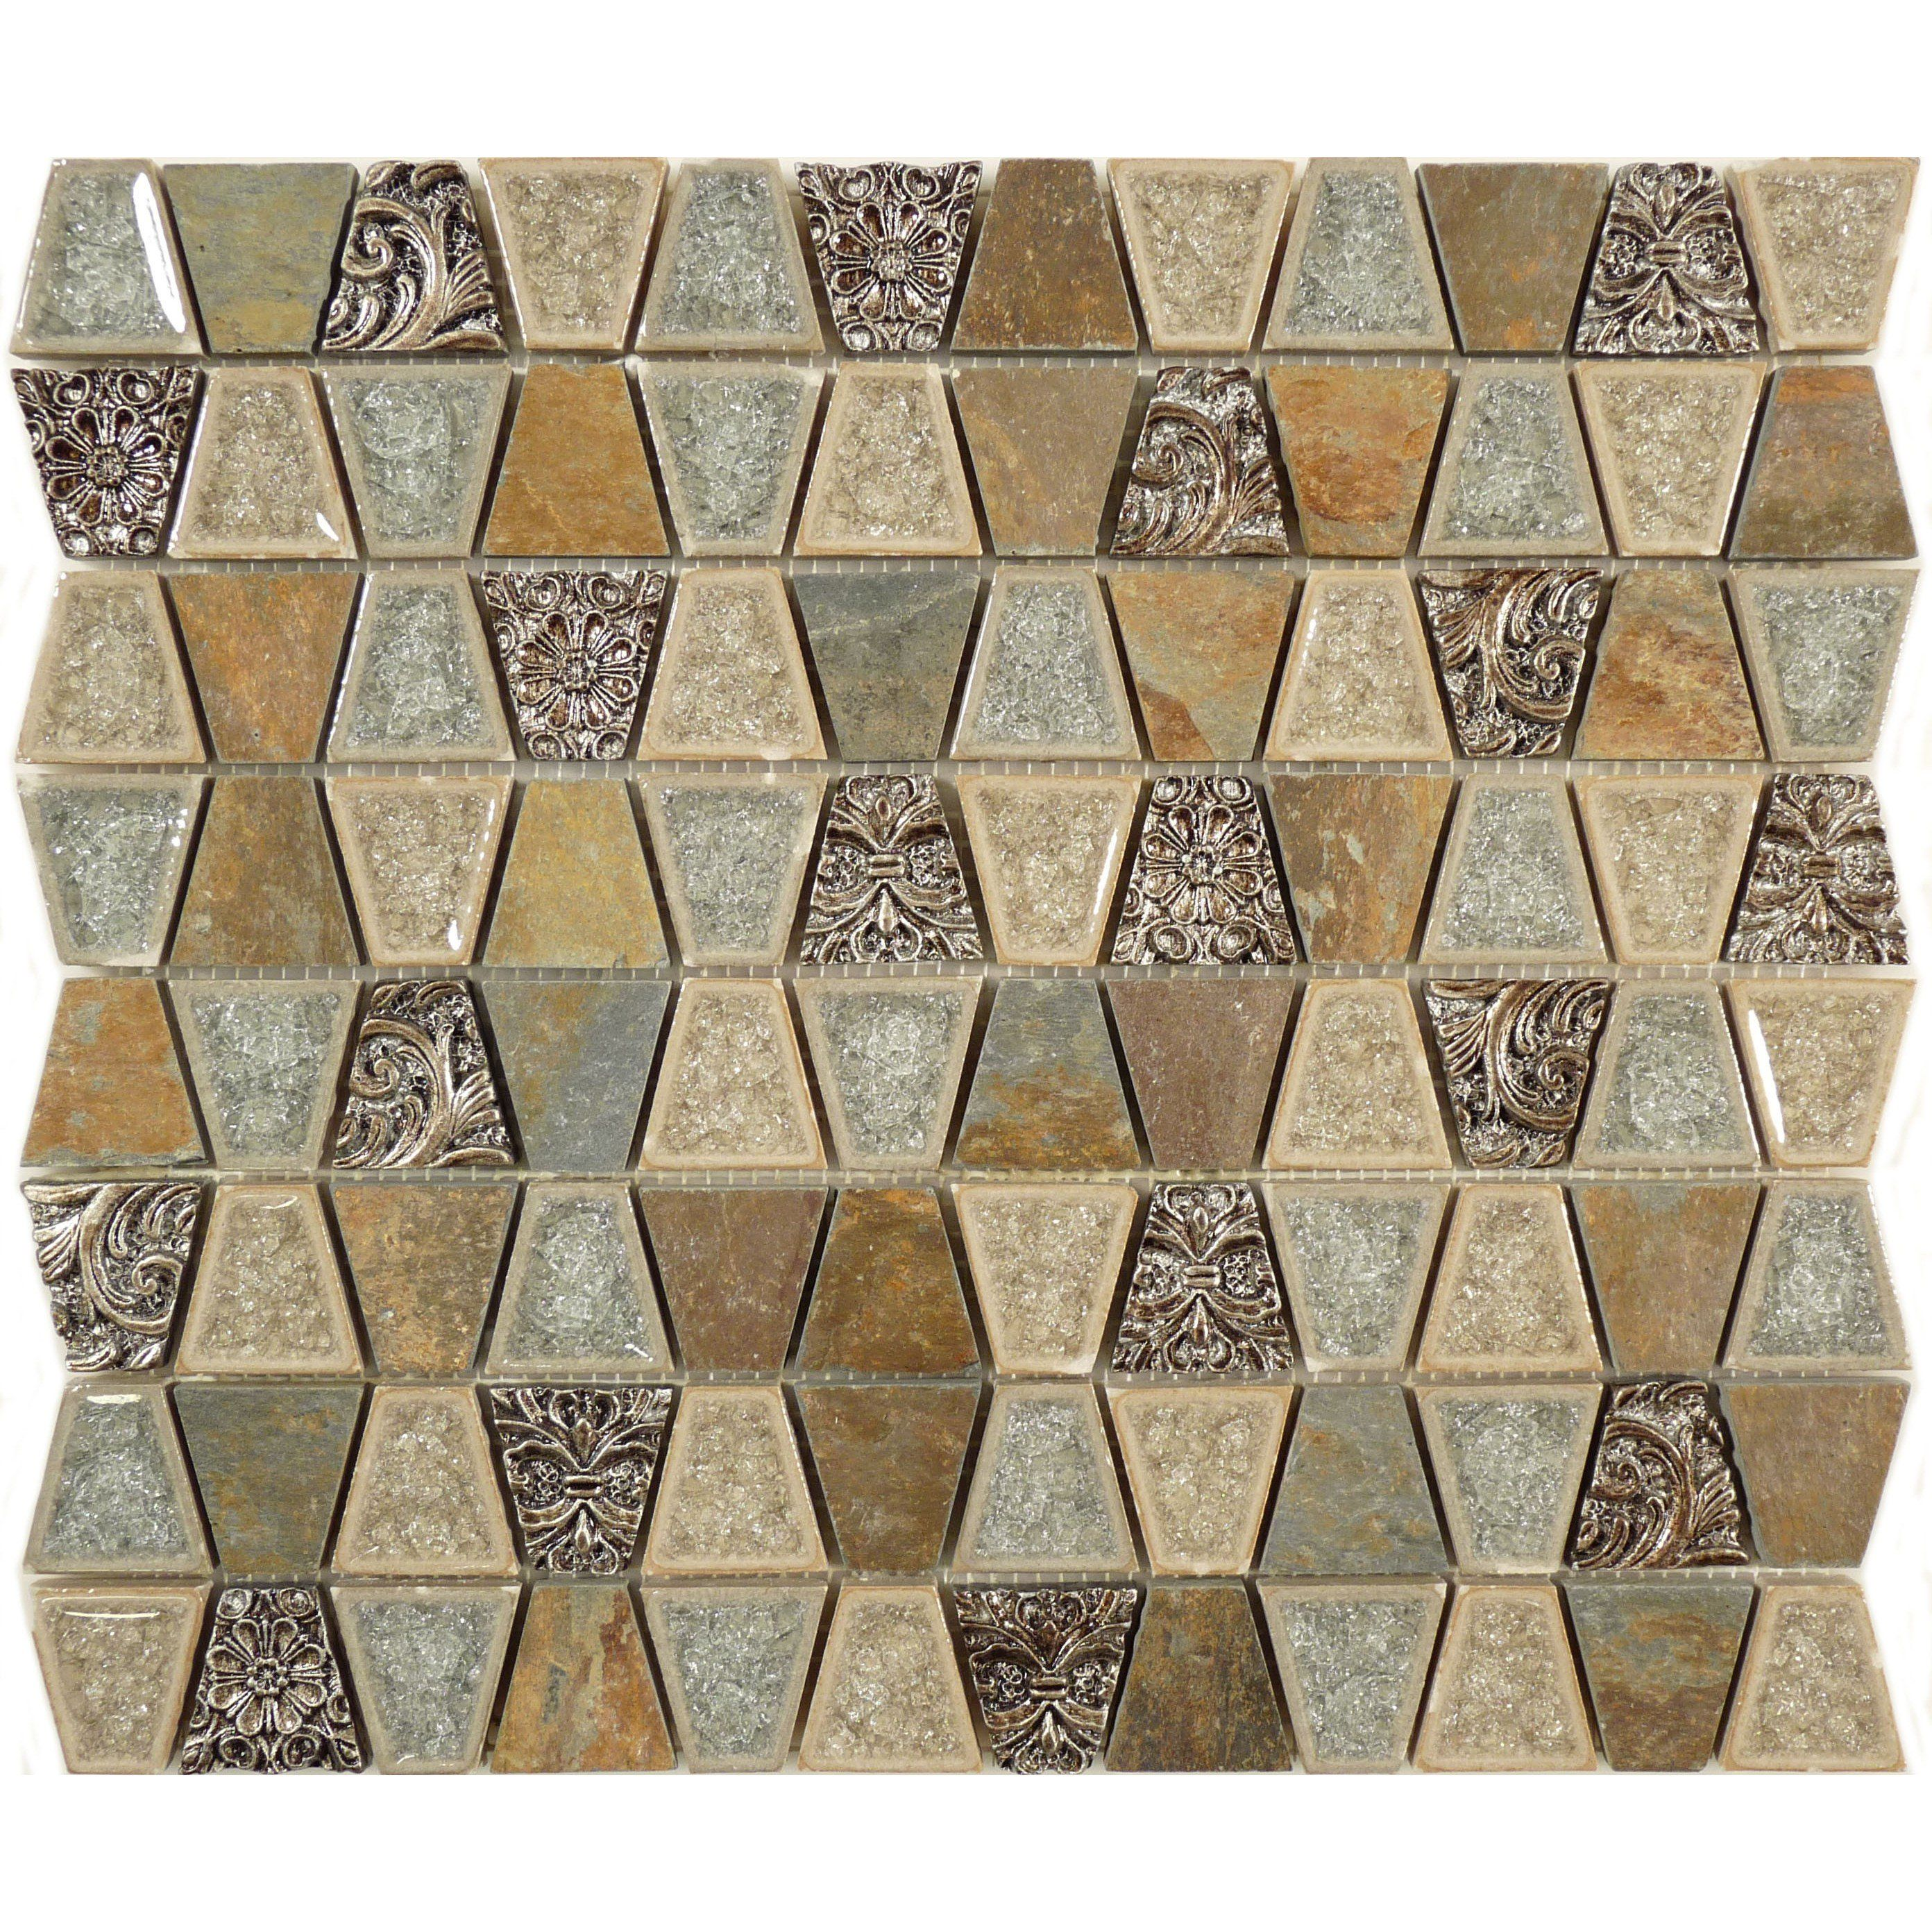 Sheet Size 10 5 X2f 8 Quot X 12 1 X2f 4 Quot Tile Size 1 1 X2f 8 Quot X 1 1 X2f 4 Quot Tiles Per S Grey Glass Trapezoid Slate Tile